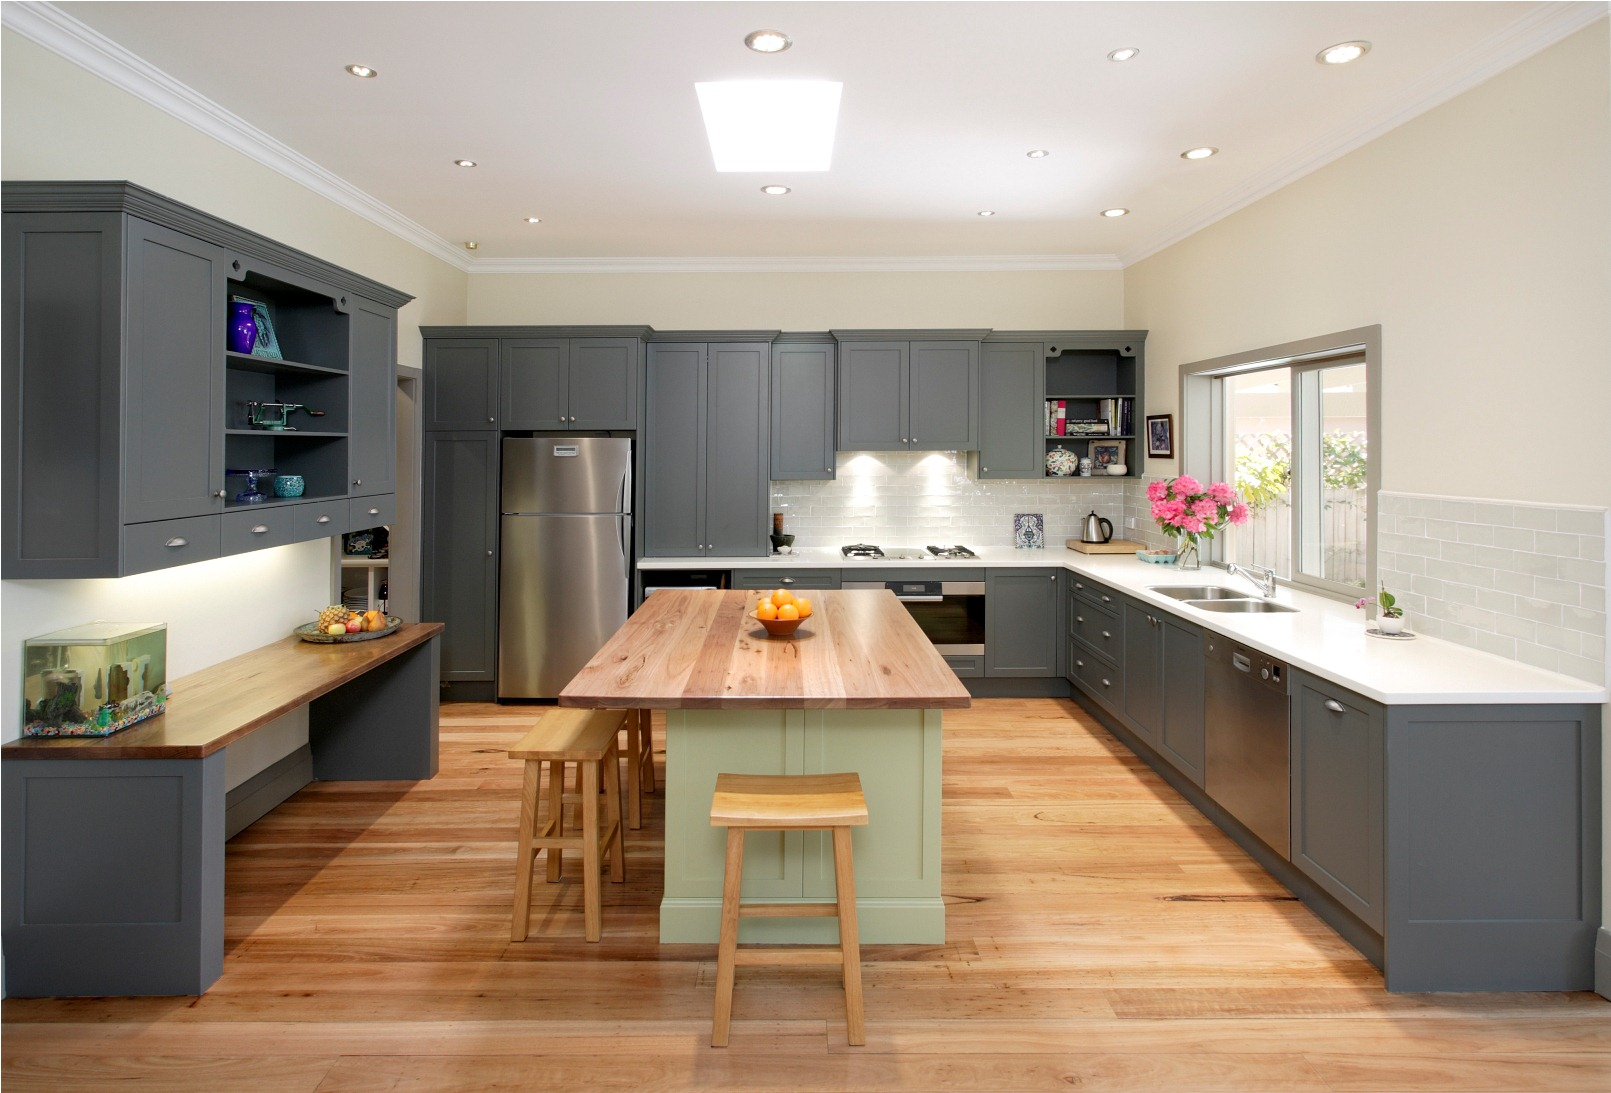 Wood style table top and flooring with grey kitchen cabinets